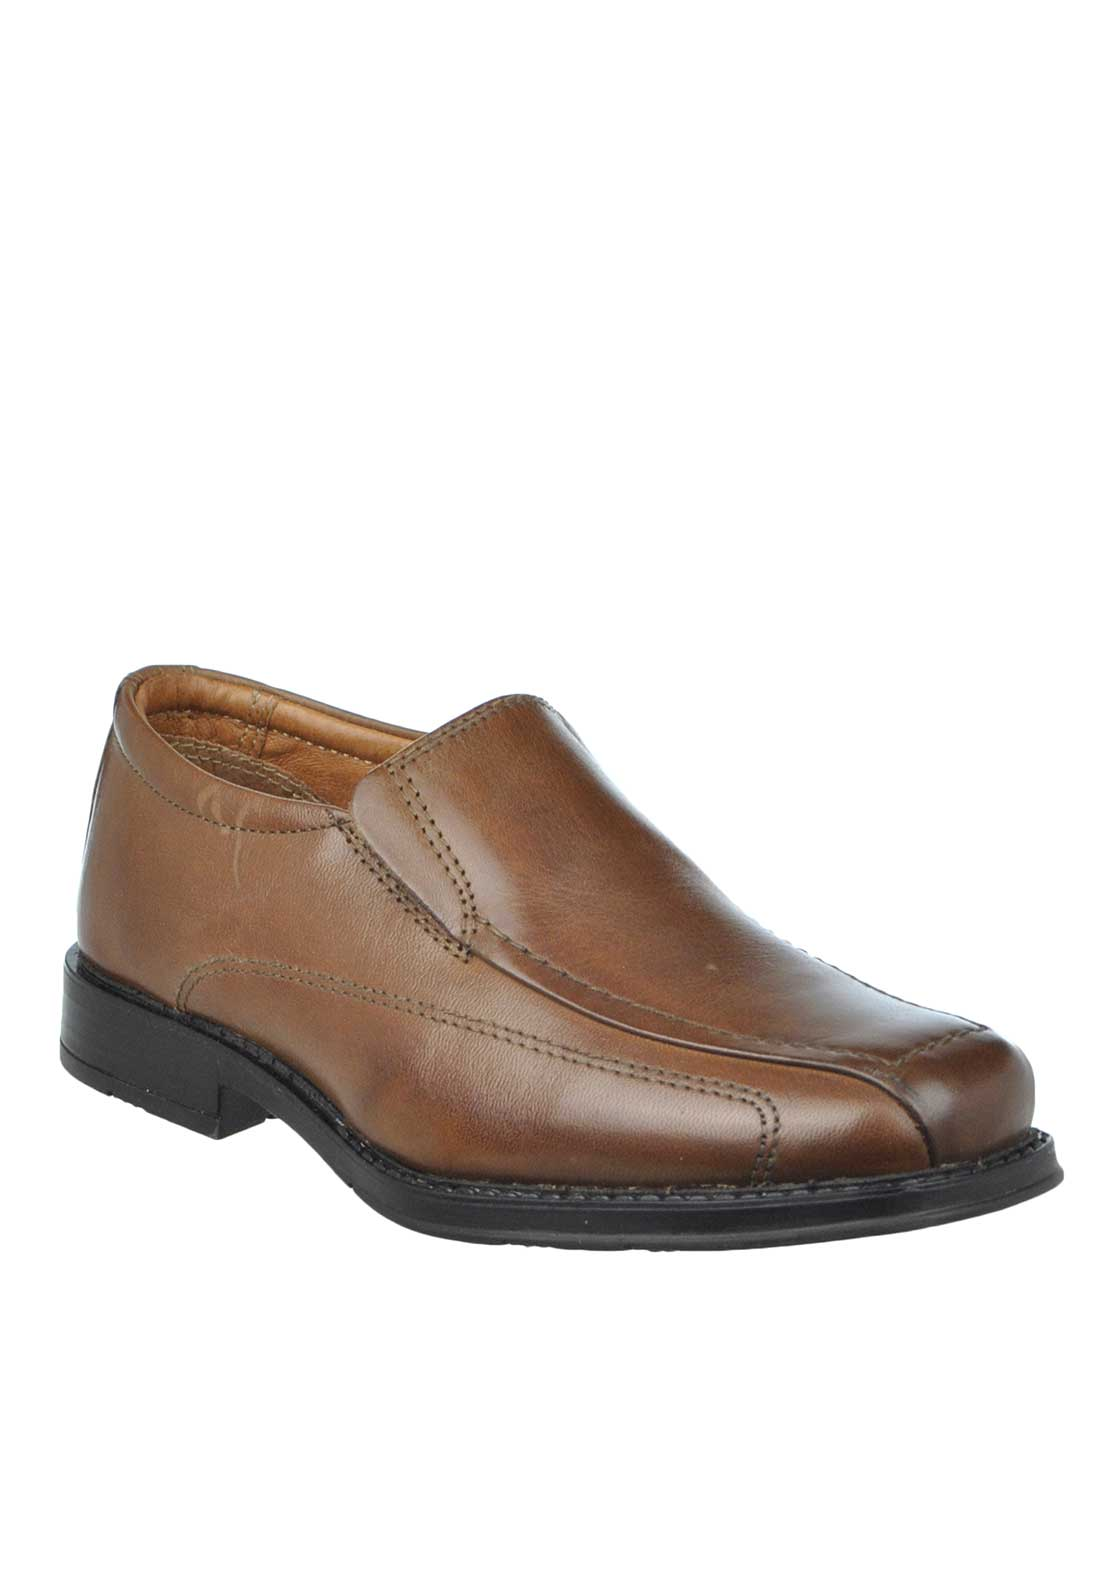 Dubarry Boys Geff Leather Slip On Loafer Shoes, Brown